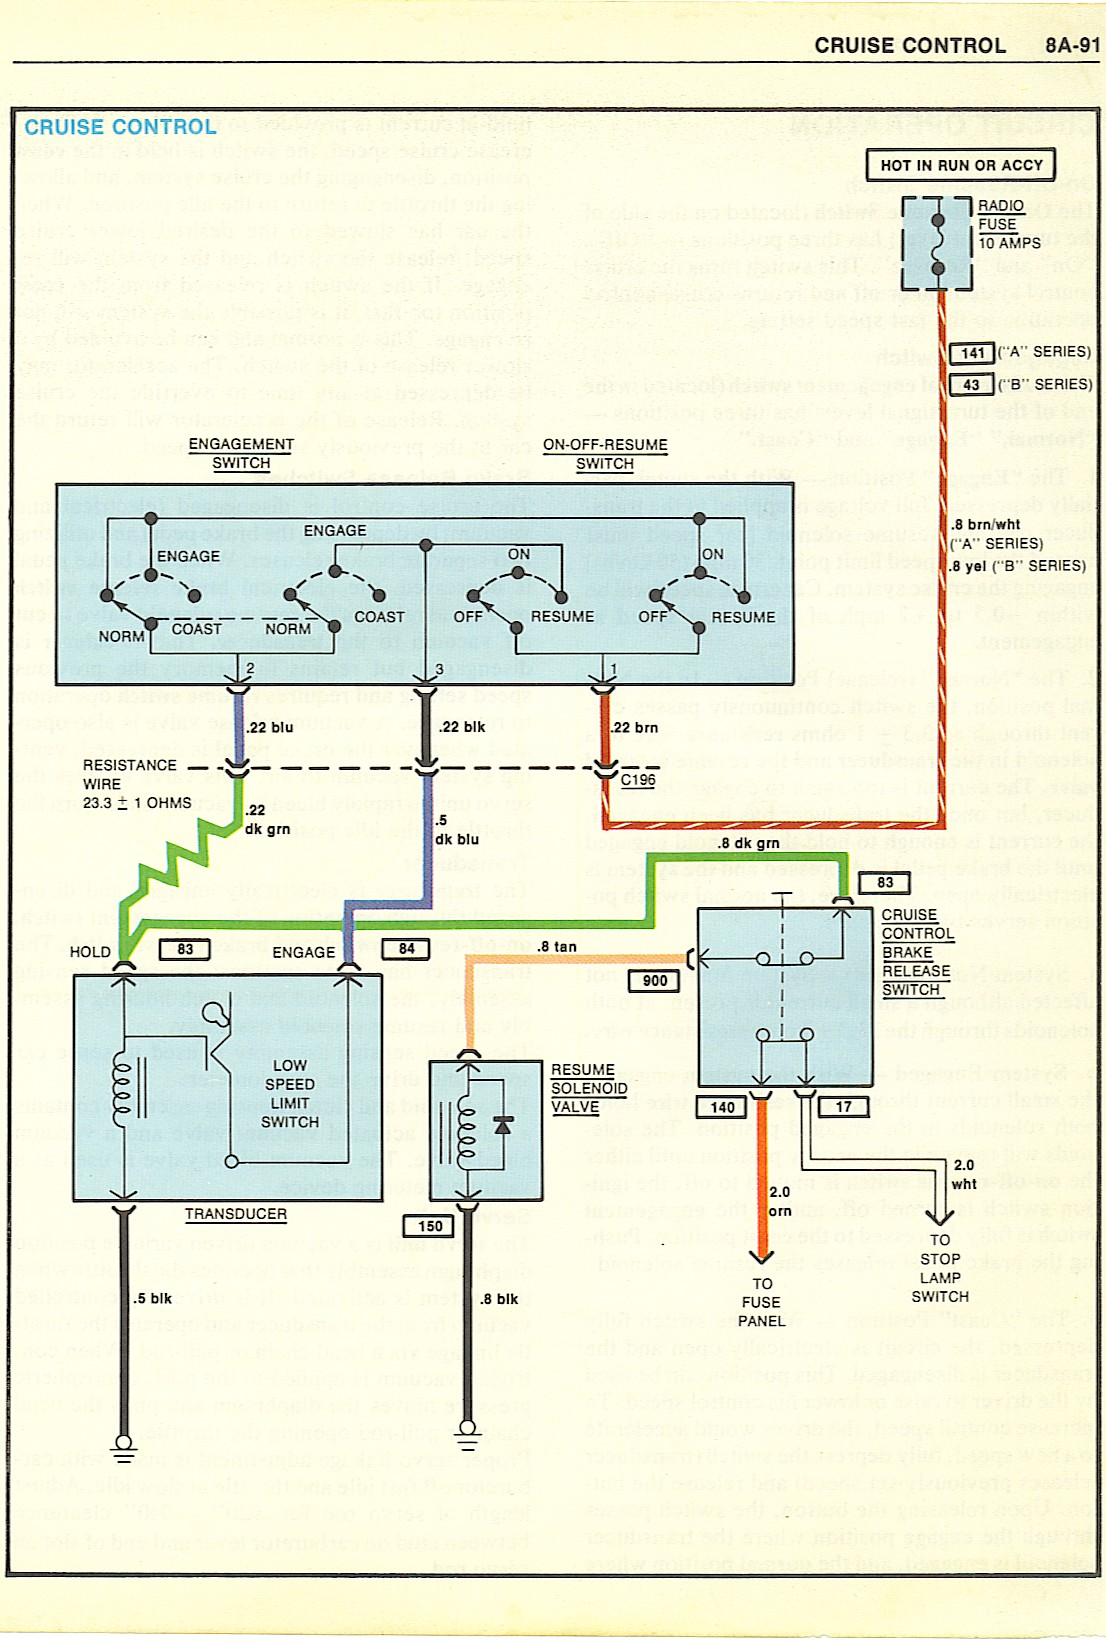 hight resolution of general cruise control diagram wiring diagrambuick cruise control diagram blog wiring diagrambuick cruise control diagram use